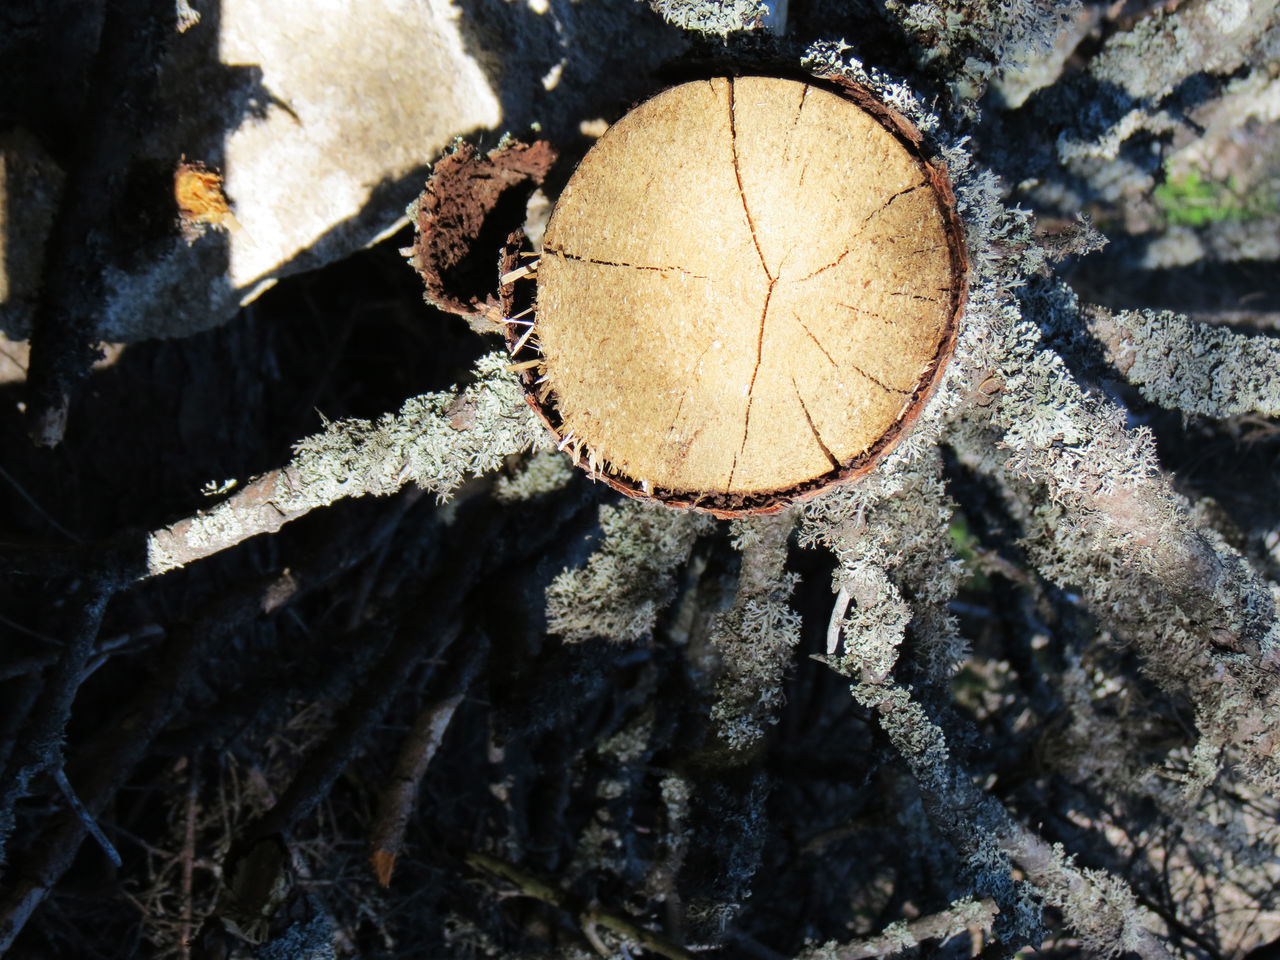 log, deforestation, lumber industry, leaf, nature, close-up, day, timber, outdoors, no people, textured, tree ring, forestry industry, beauty in nature